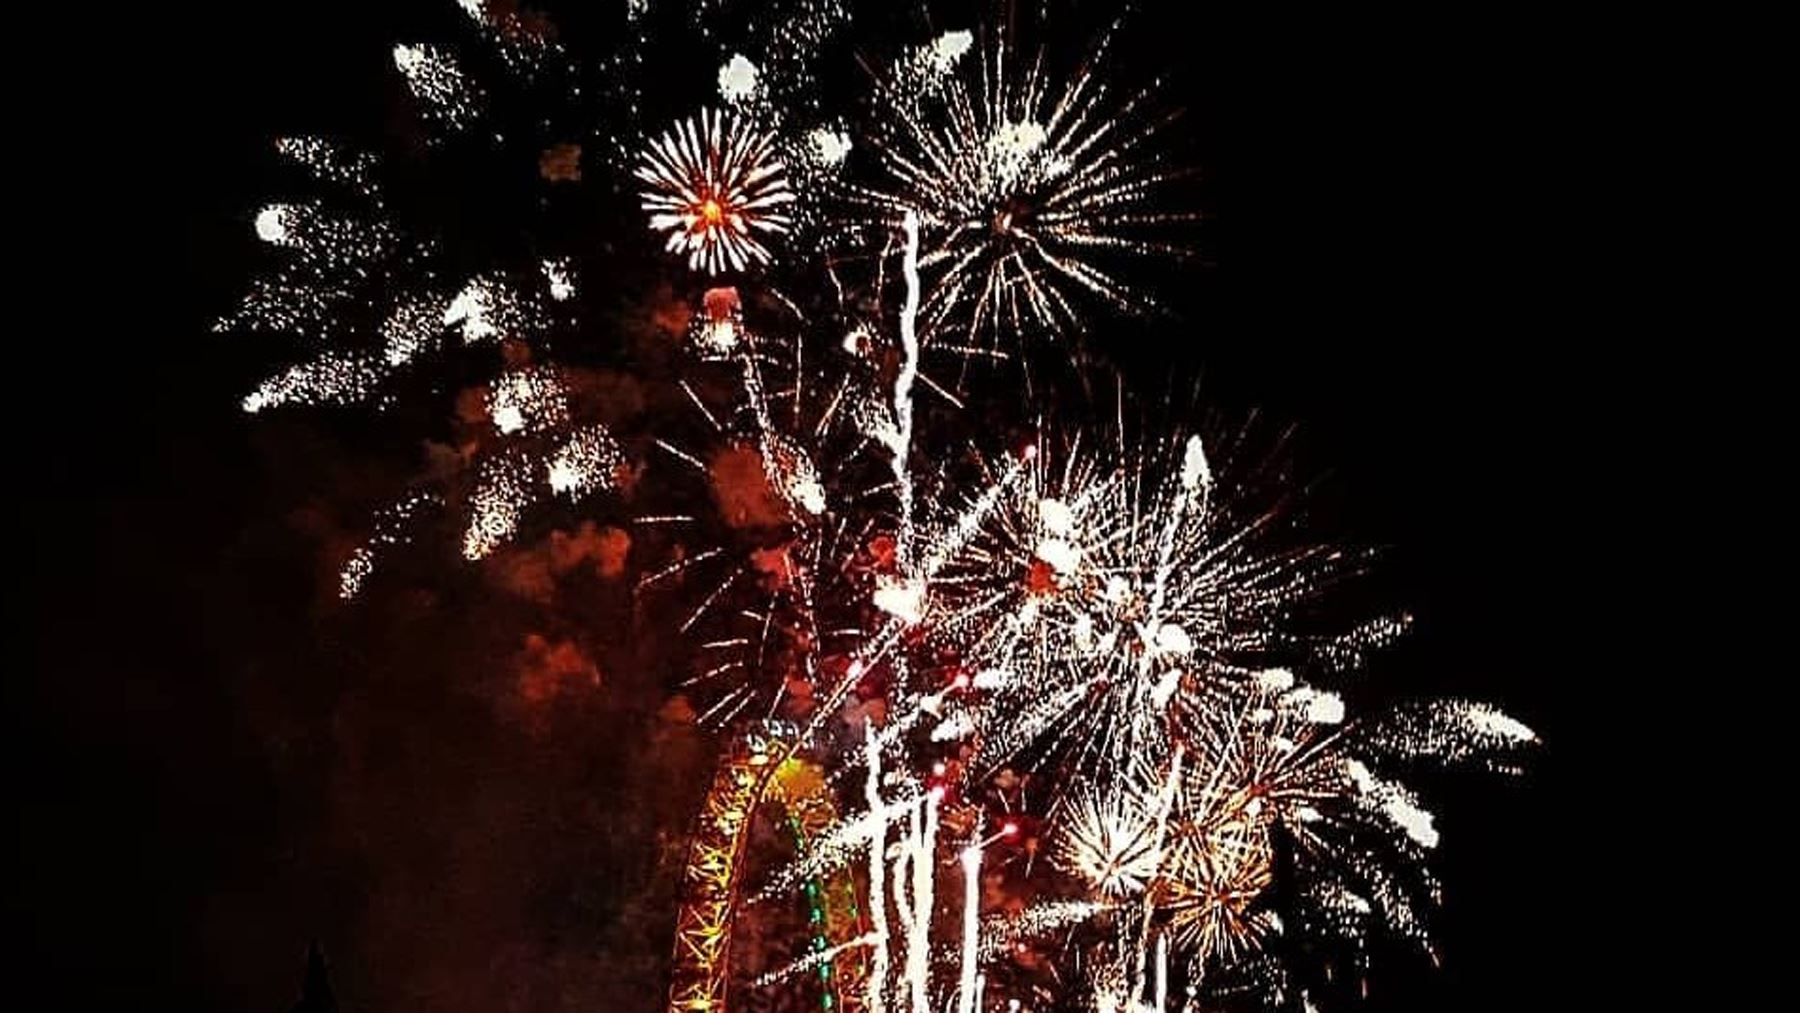 New Year's Eve - The Thames Rockets Way!